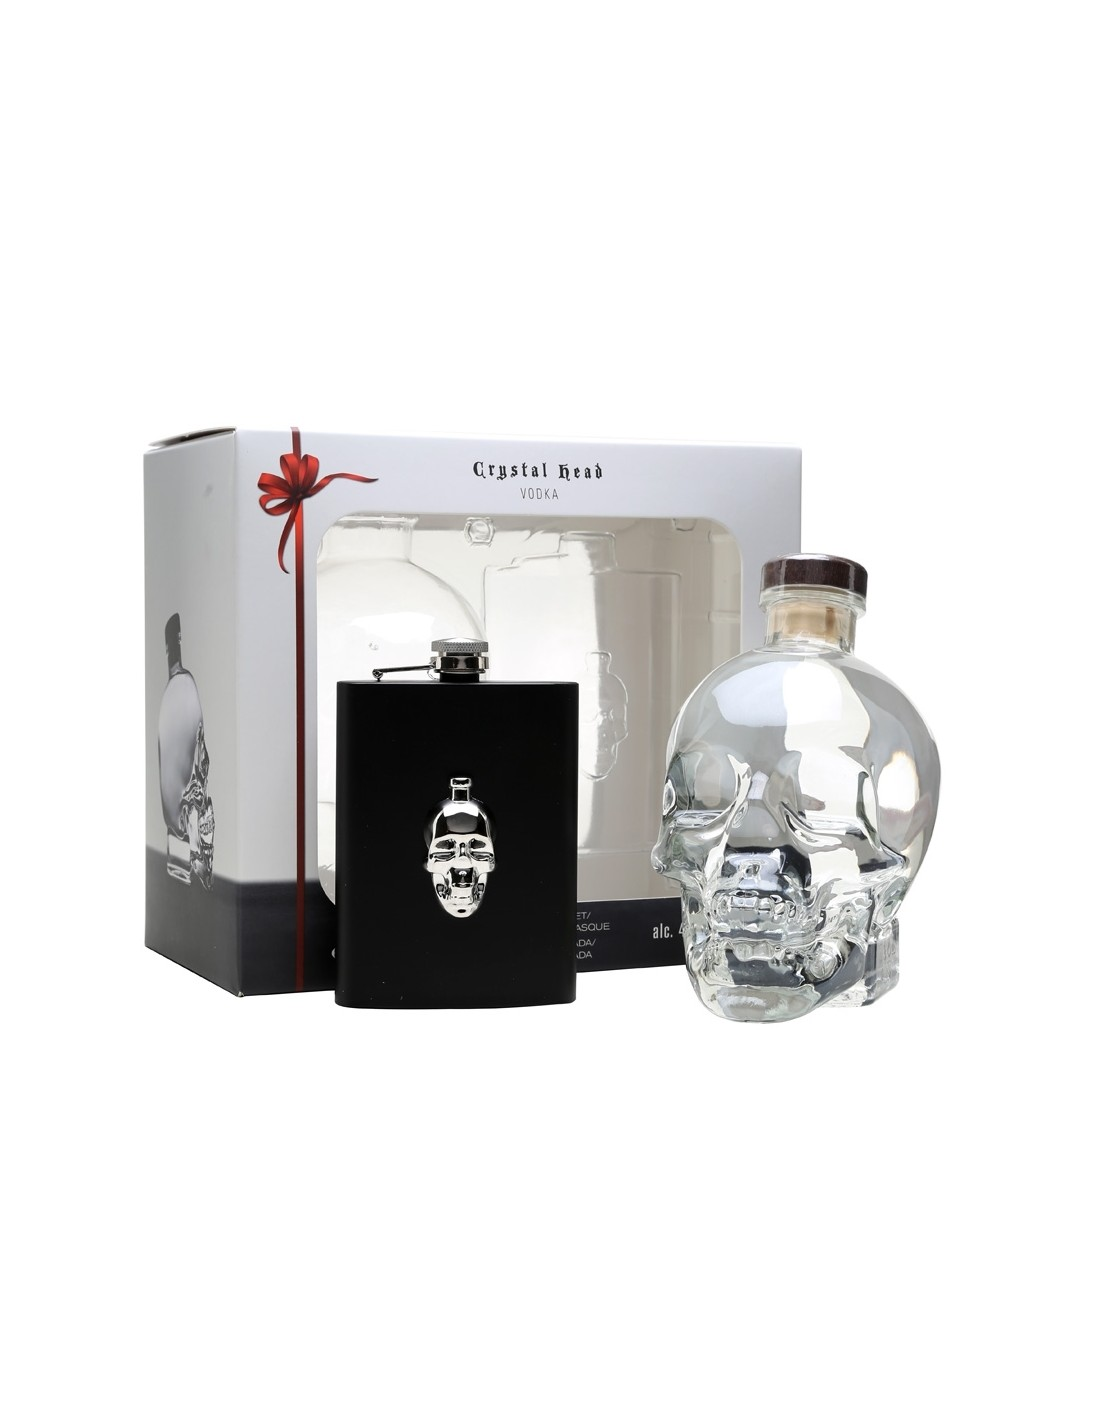 Vodca Crystal Head Hipflask 0.7L, 40% alc., Canada